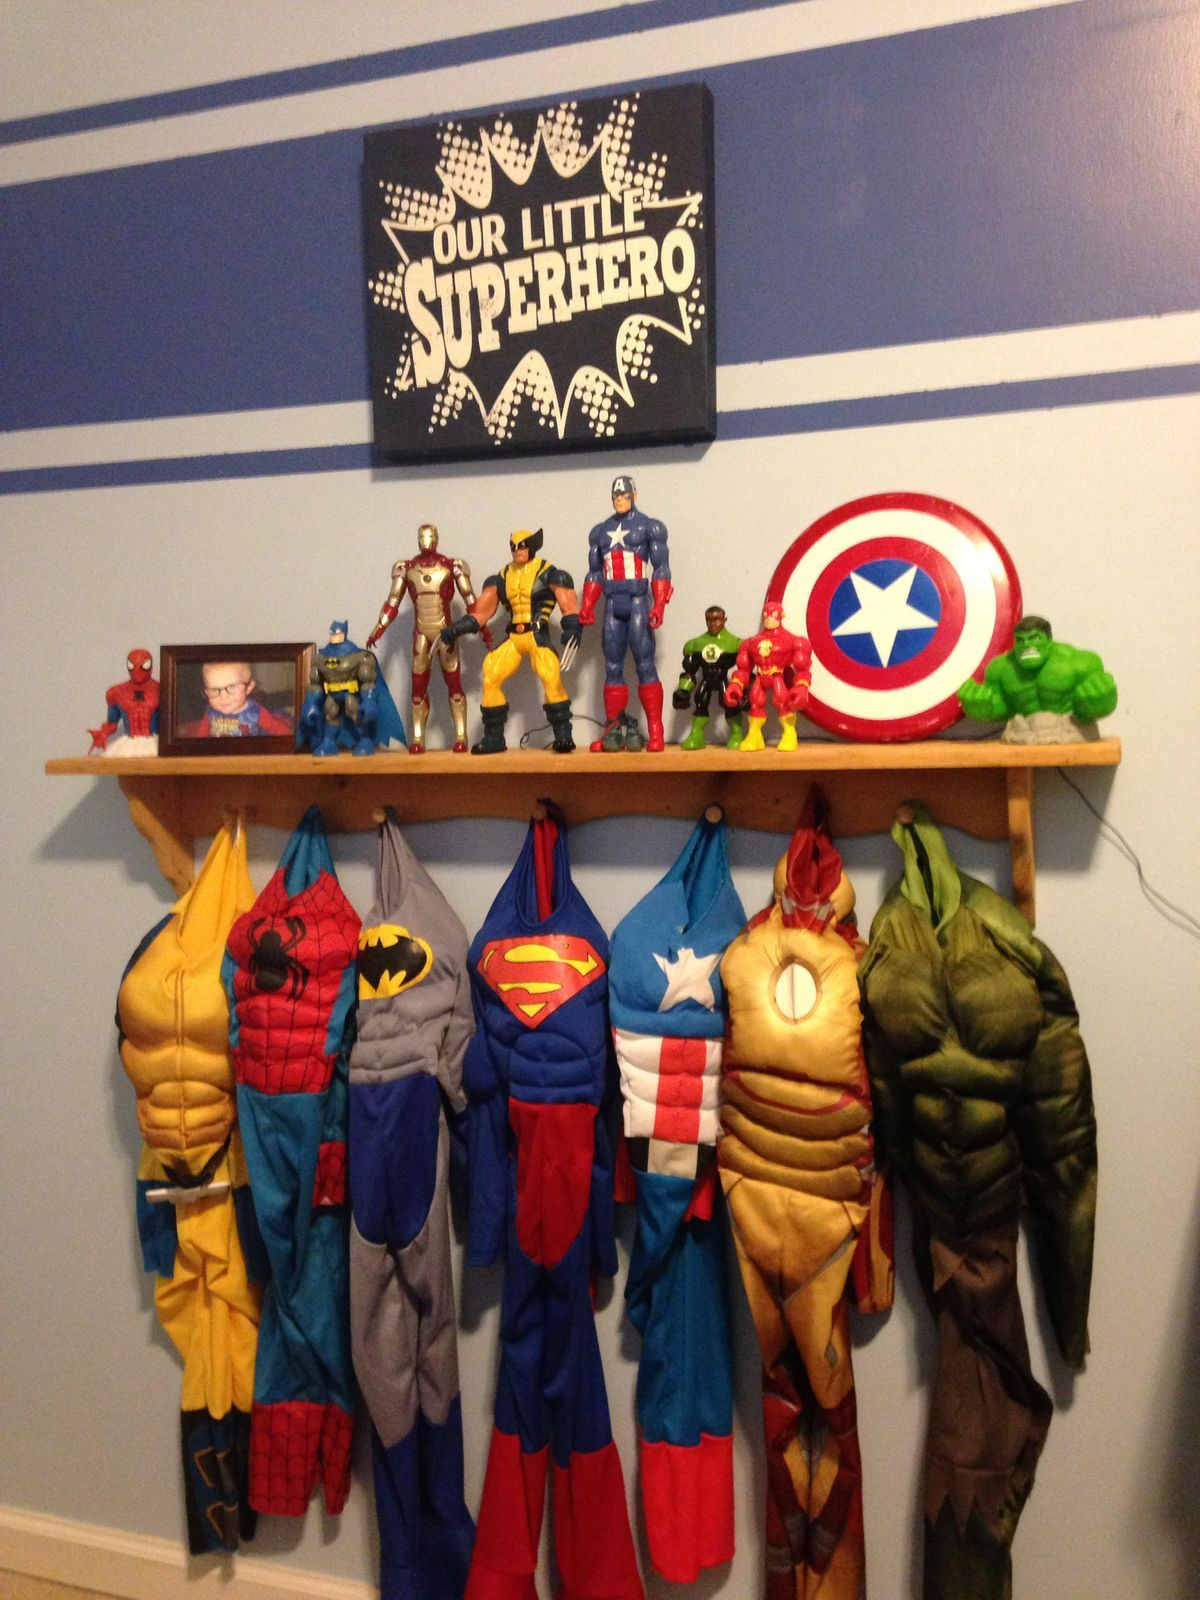 SuperHero Bedroom Decor Idea  Superhero room, Avengers room, Kids